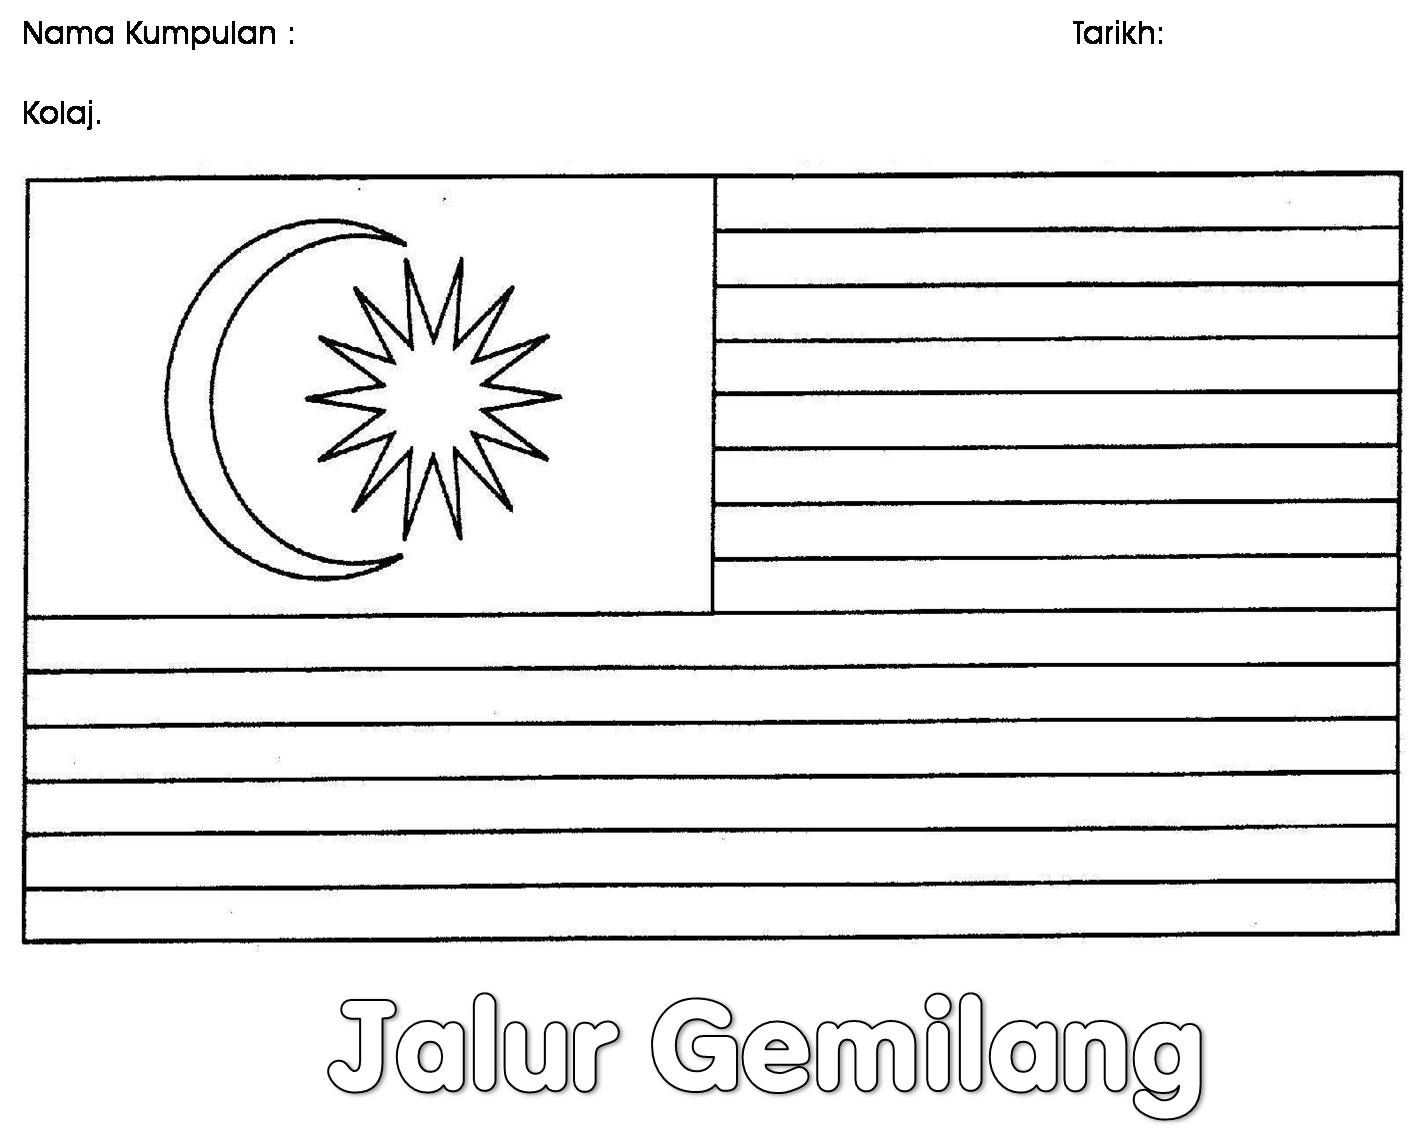 Malaysia clipart jalur gemilang Picture GEMILANG Page Bendera www